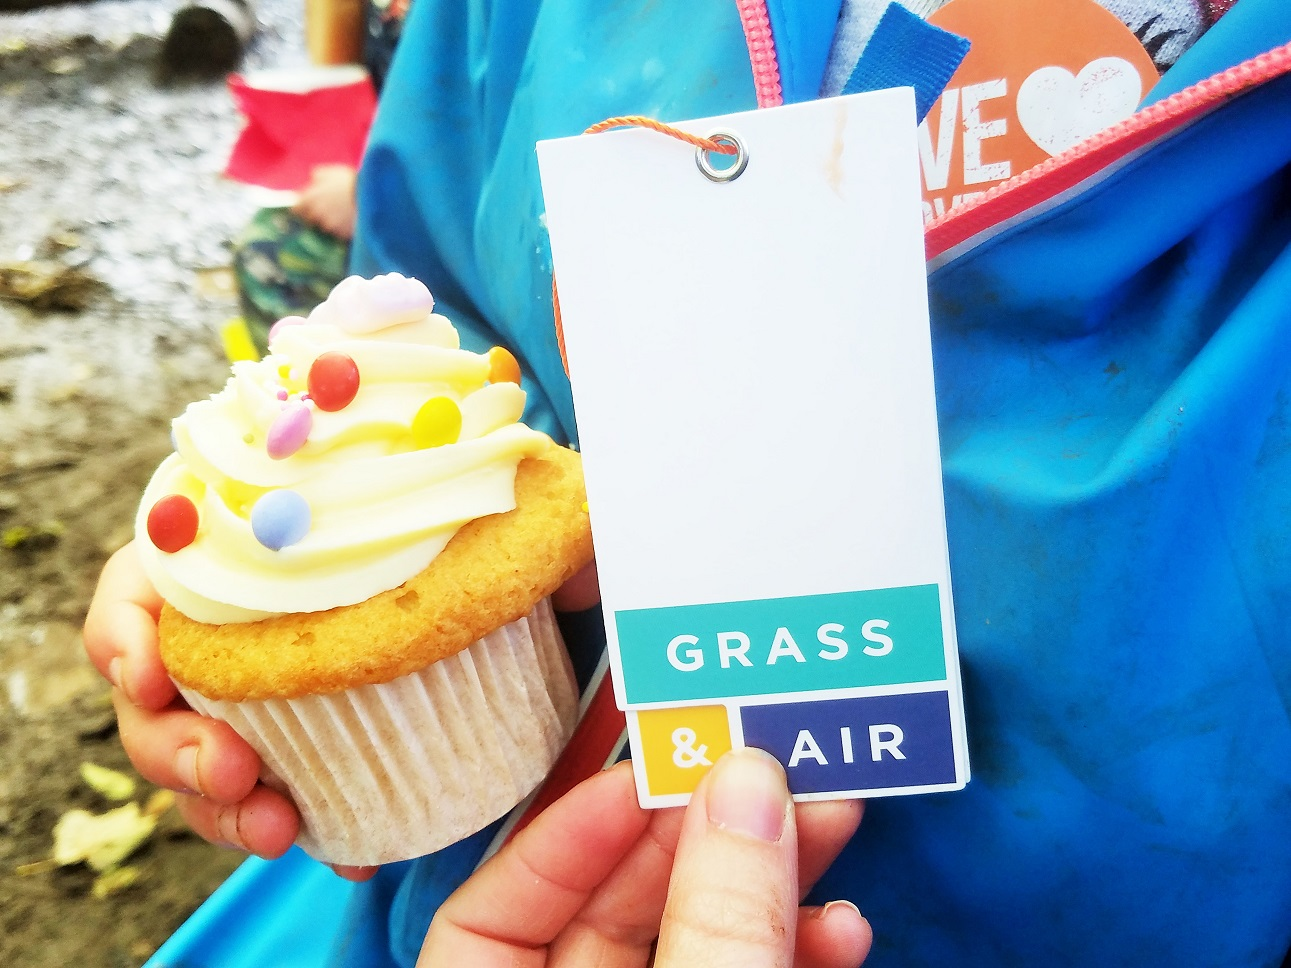 Grass & Air colourful cupcake